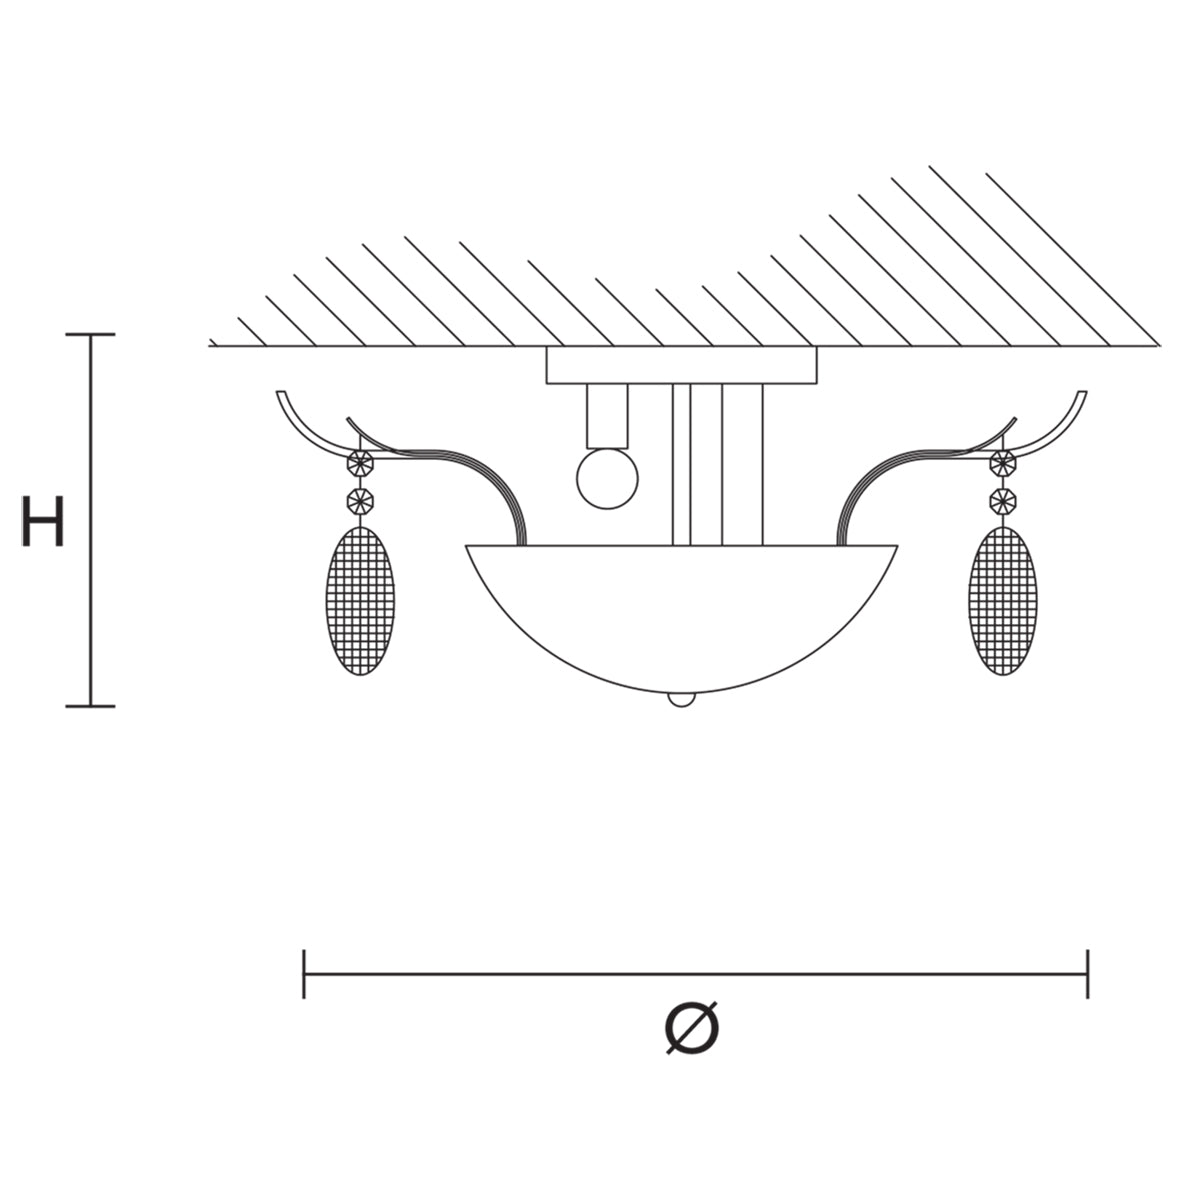 Isbel PL 6 Ceiling Lamp Specifications